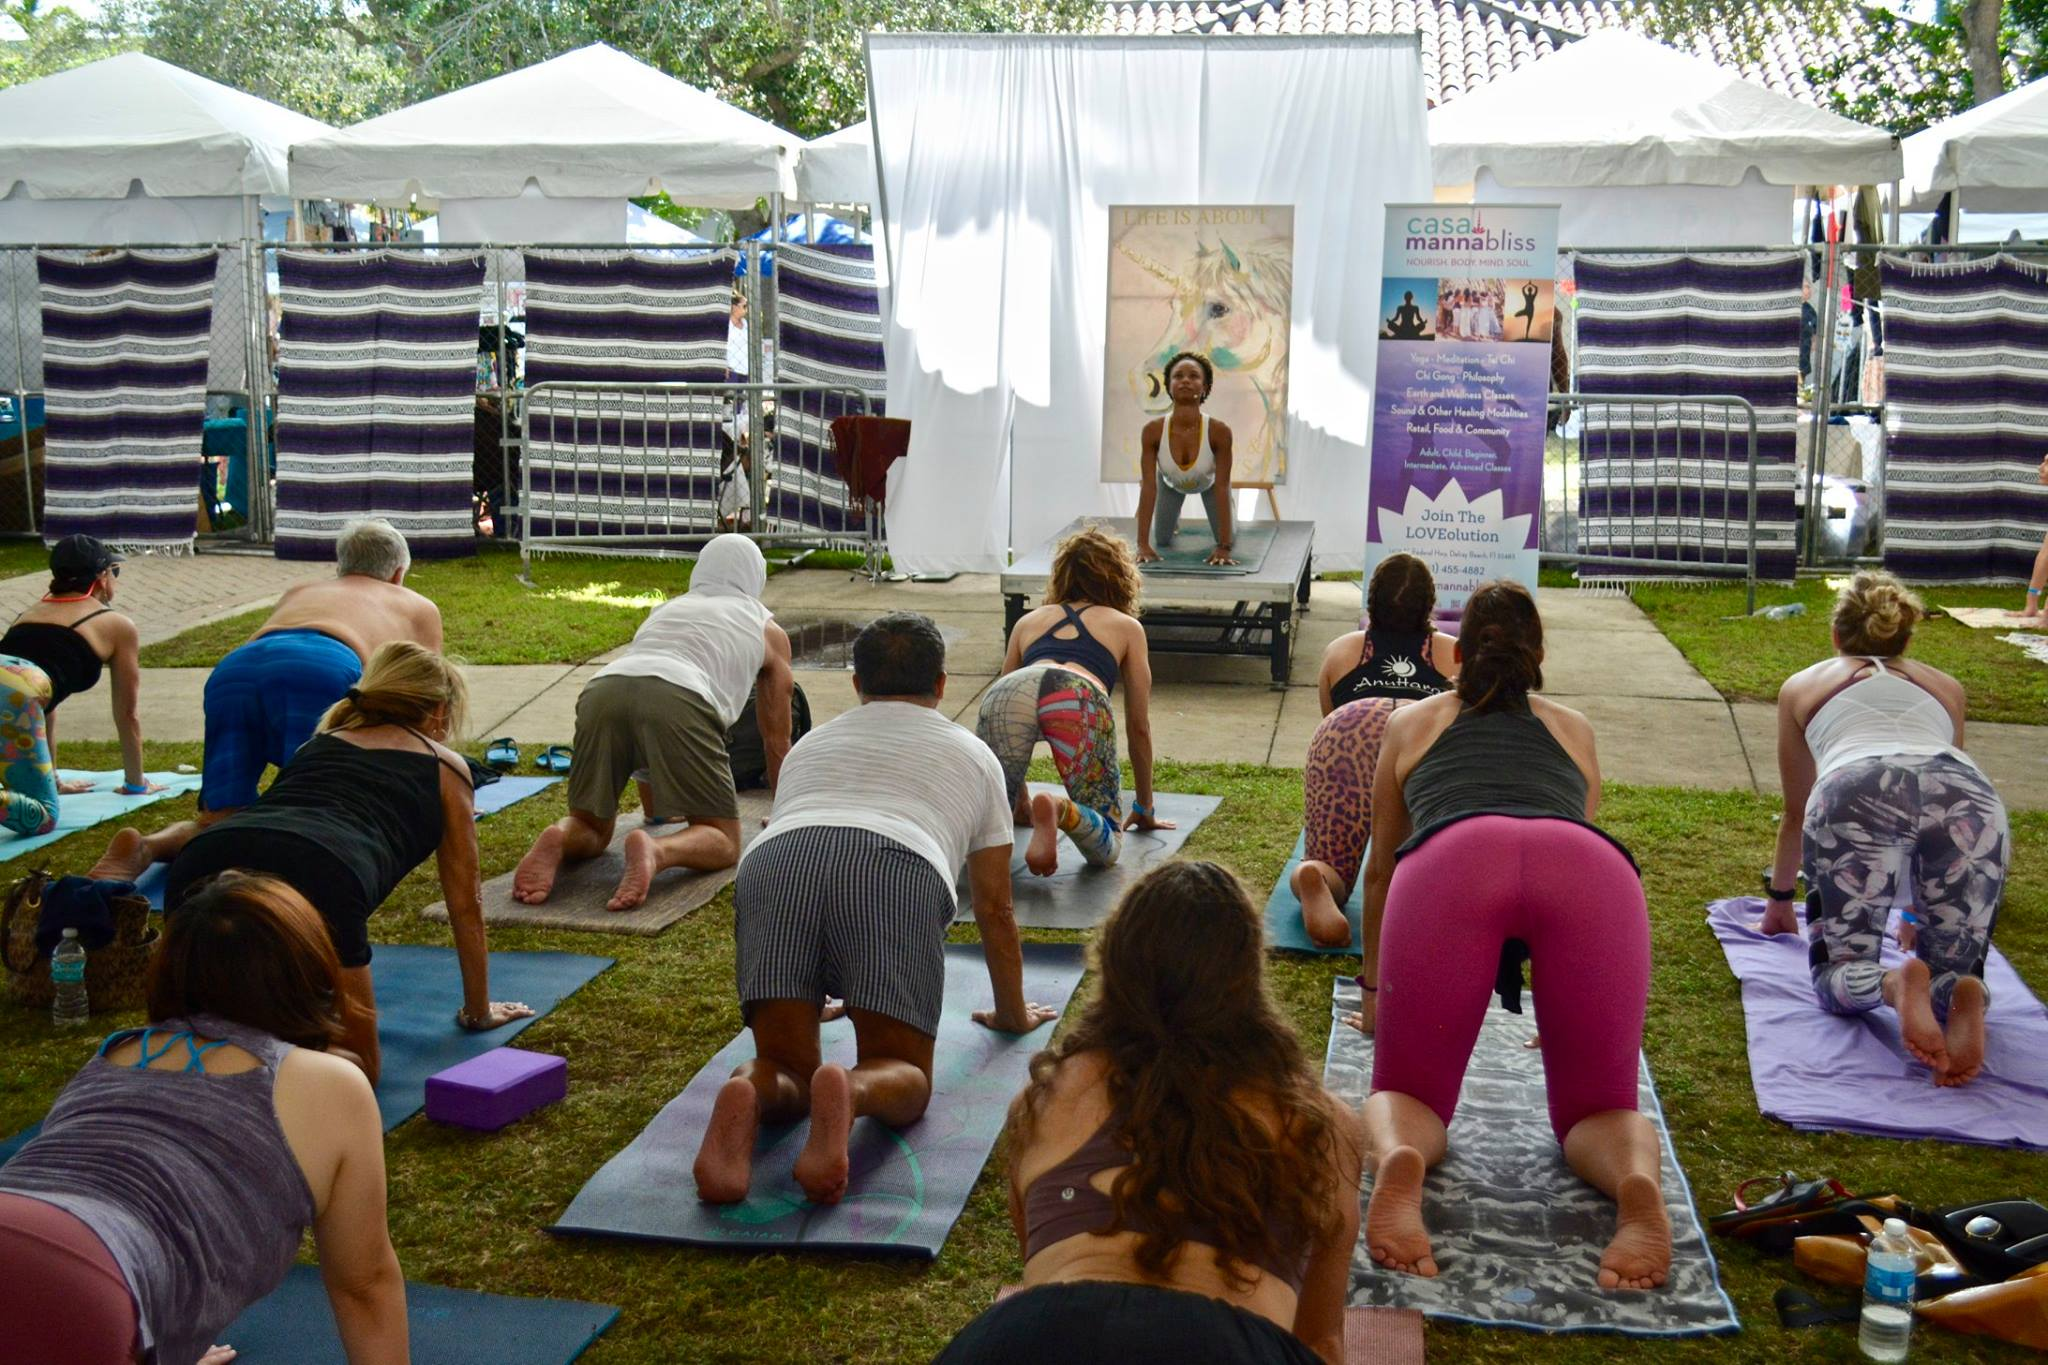 Yoga Fun Day Yoga Festival Yoga Fun Day Yoga Festival Florida Yoga Retreats Teacher Training Yoga Class Yoga Studio